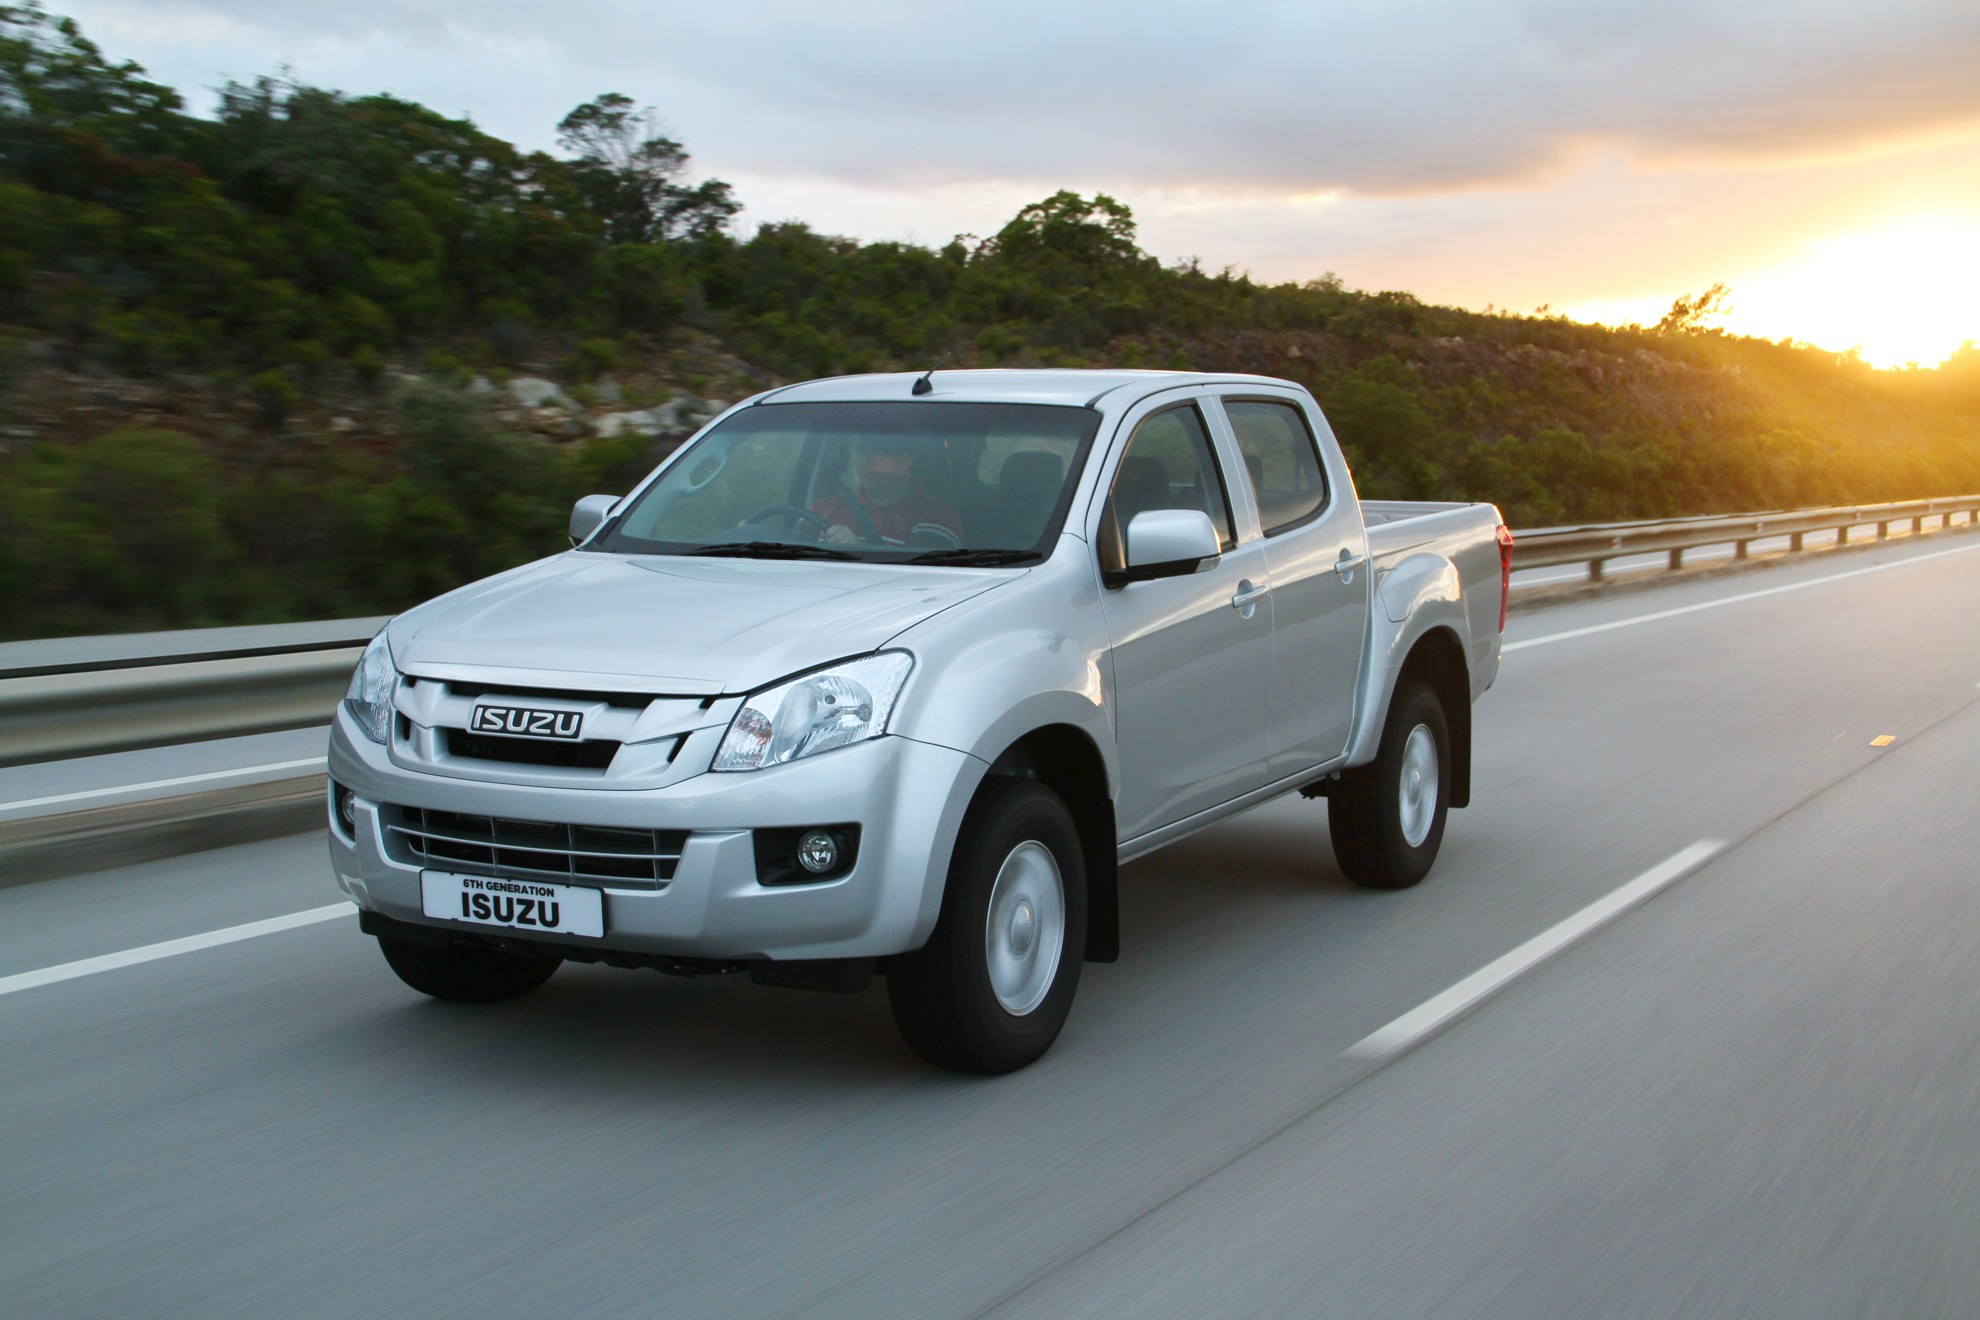 New Isuzu South Africa